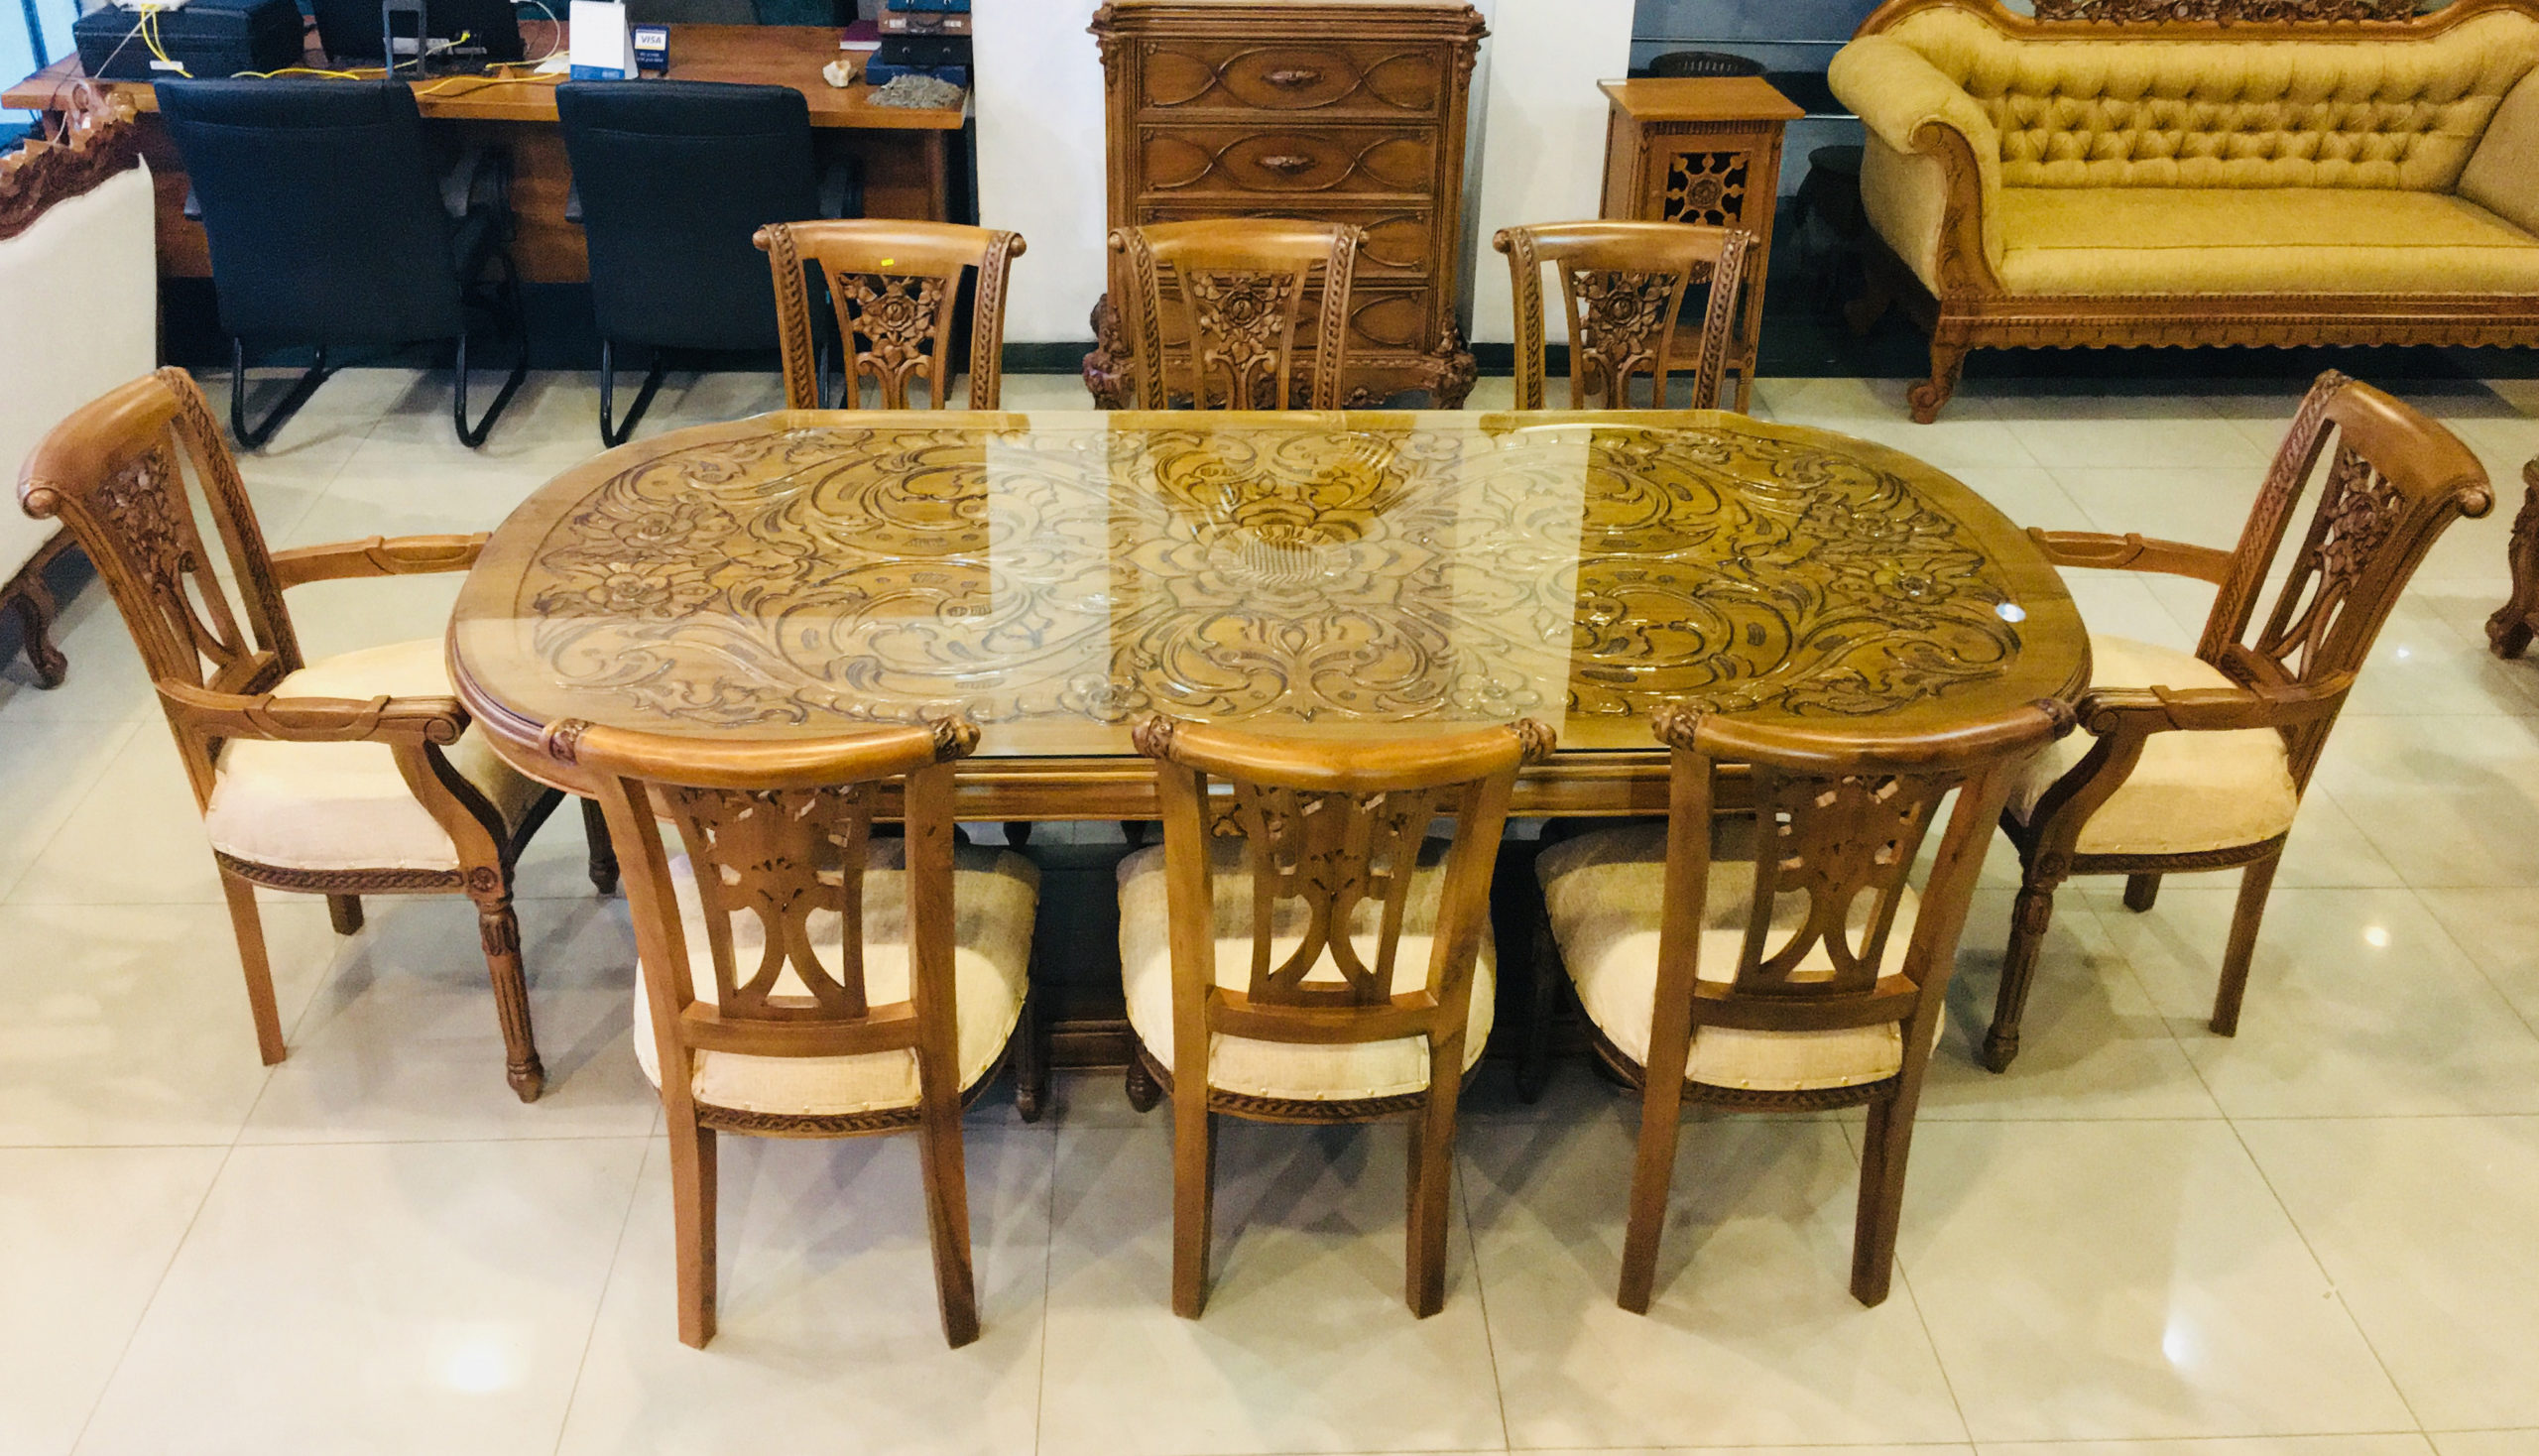 Dining Tables In Sri Lanka Sandella Furniture